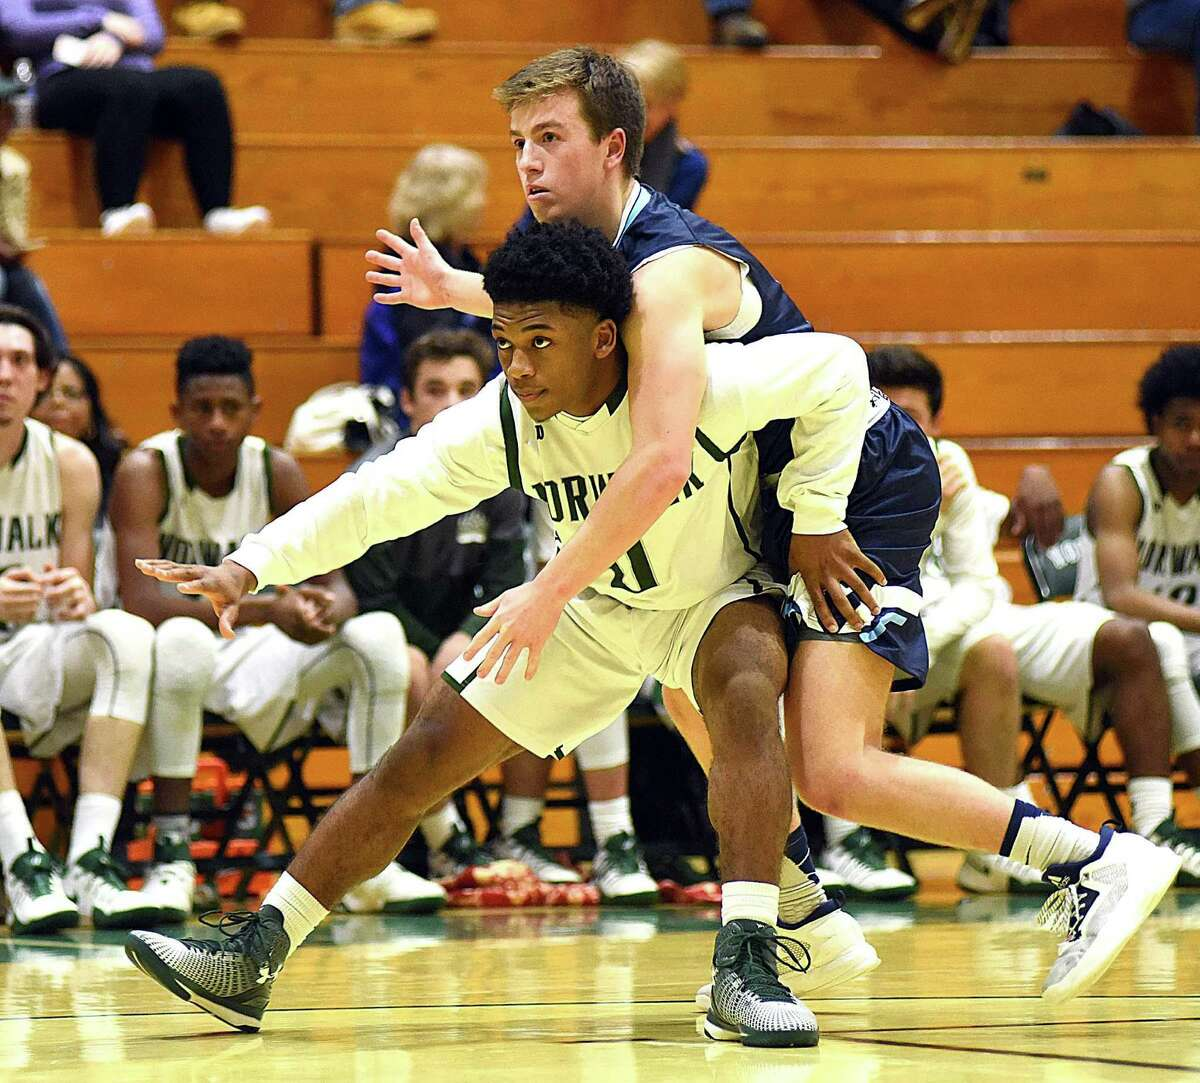 Norwalk's Deandre Russell, front, tries to hold off Wilton's Sean Breslin as the two battle for position on an inbounds pass during Tuesday's FCIAC boys basketball game at Scarso Gym in Norwalk. Wilton coasted to a 74-34 win over the Bears.